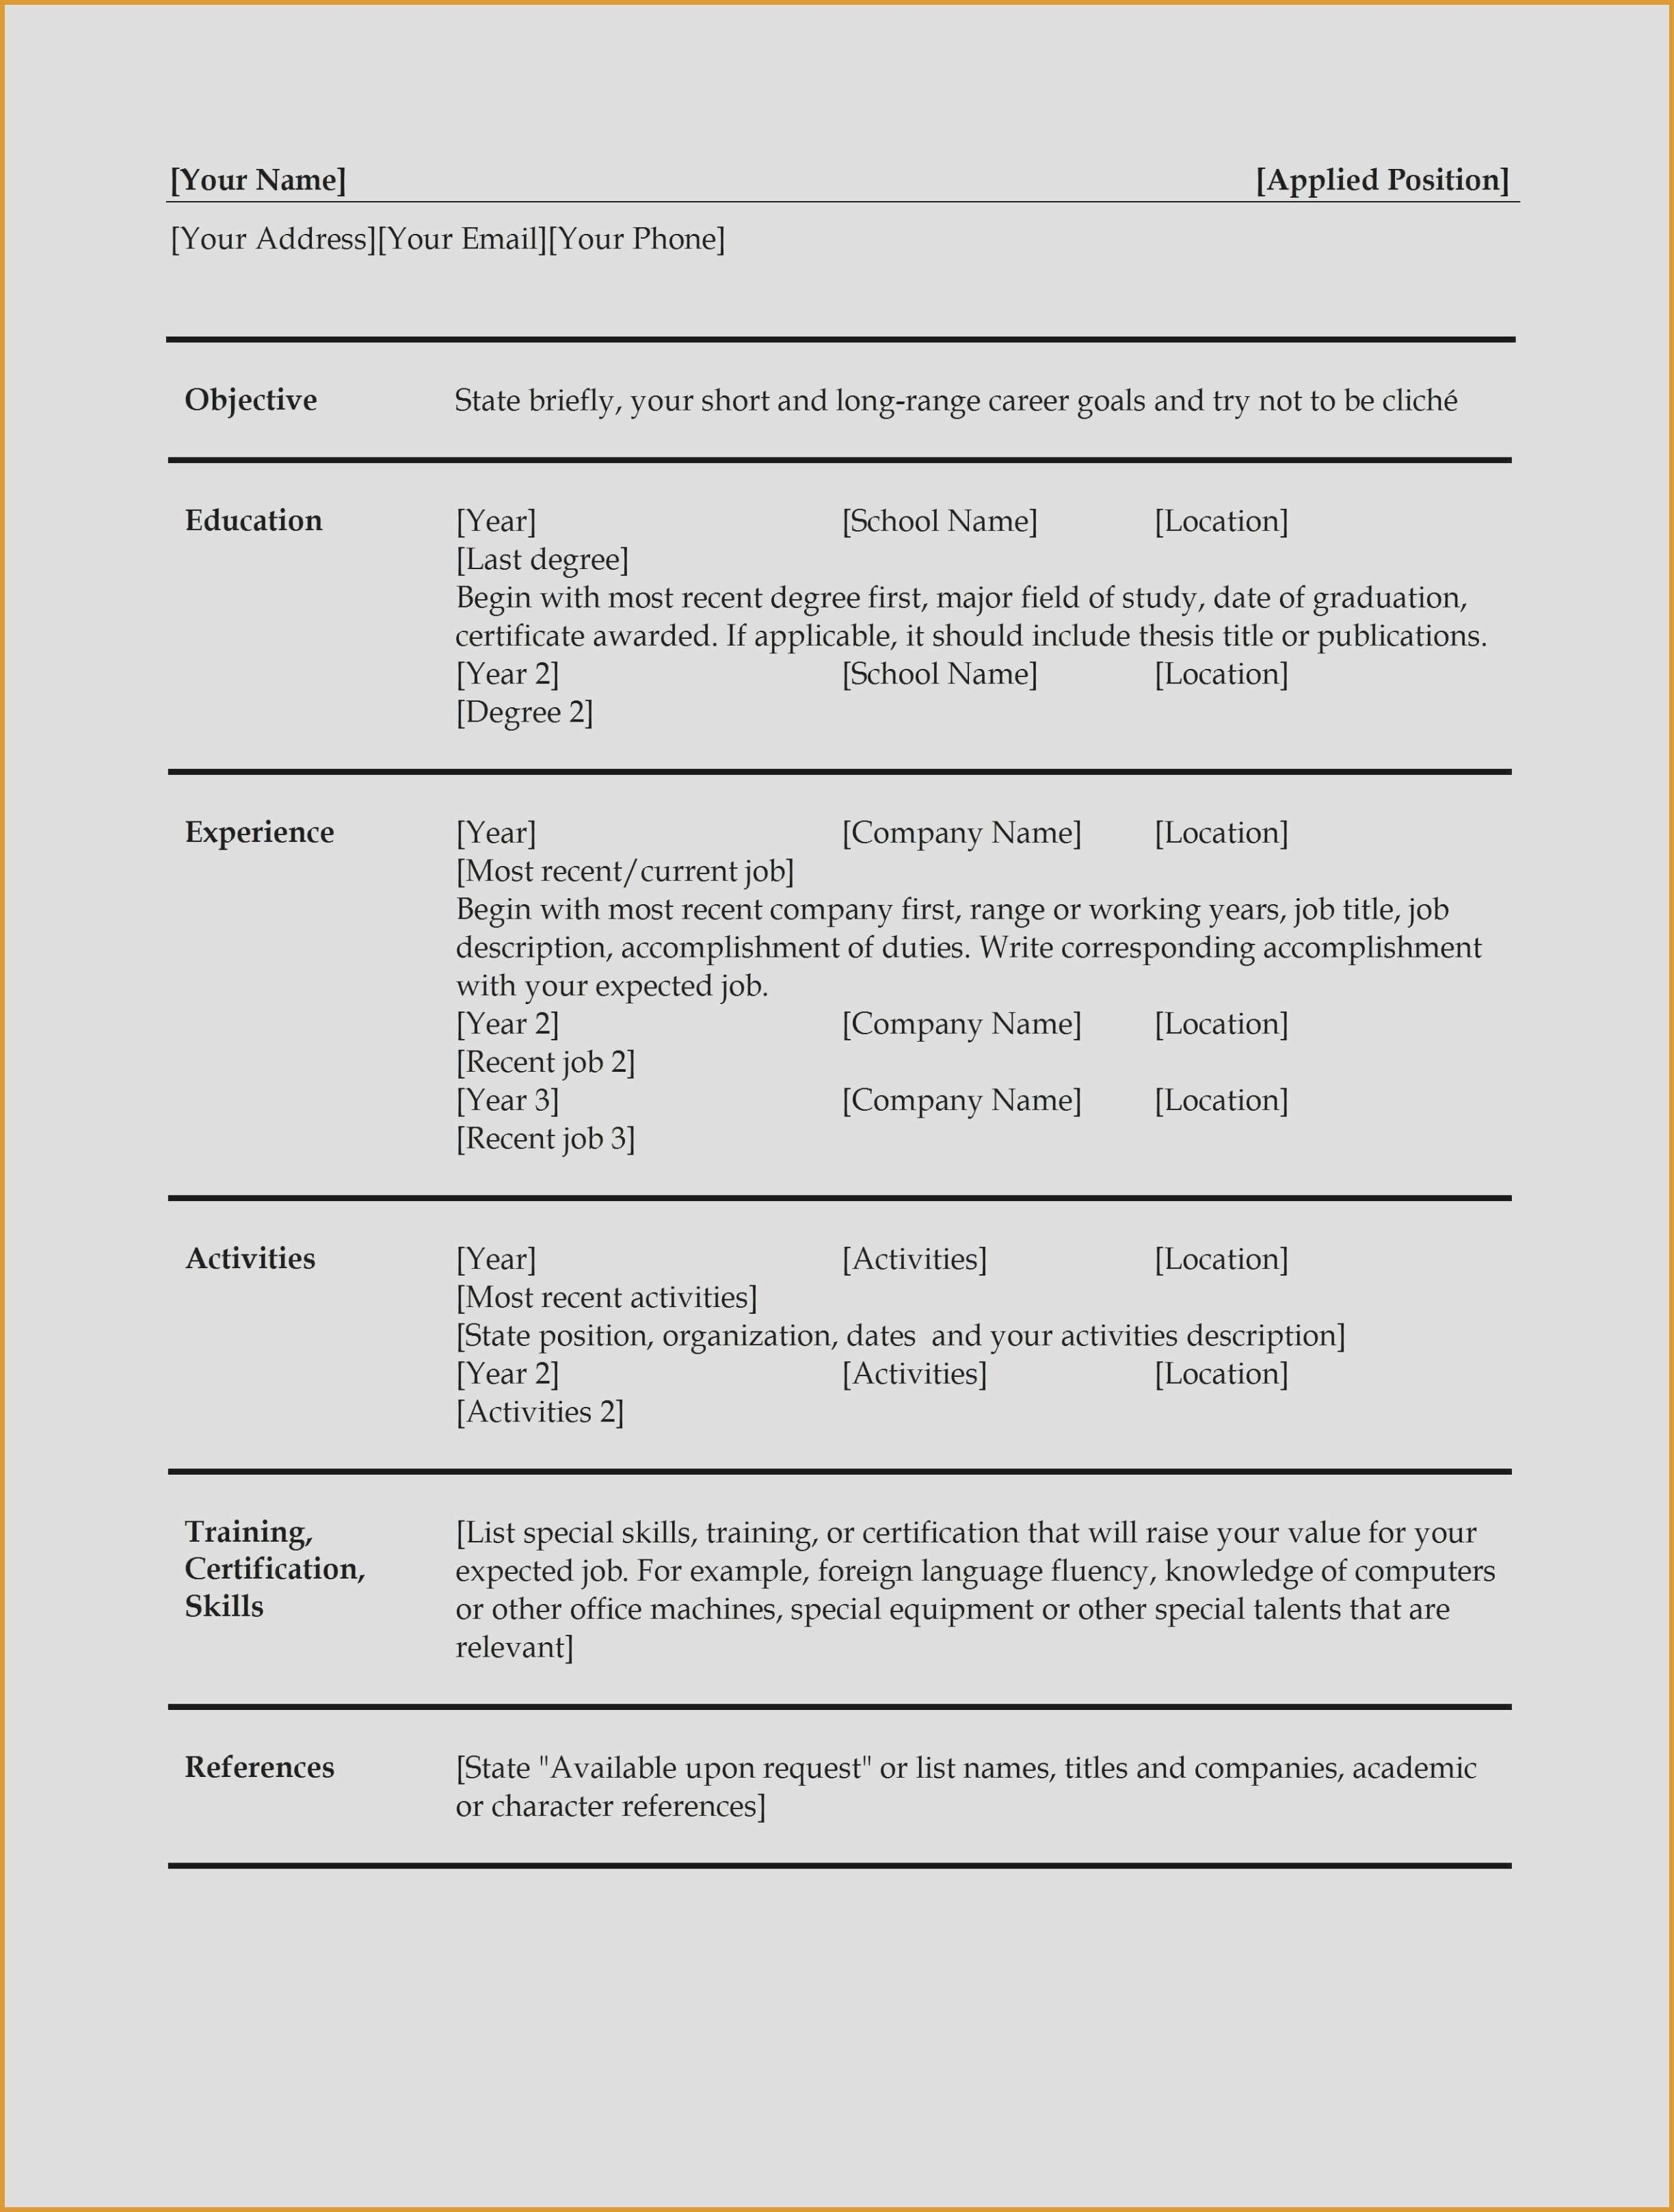 Resume Titles Examples that Stand Out - Resume Titles Examples that Stand Out